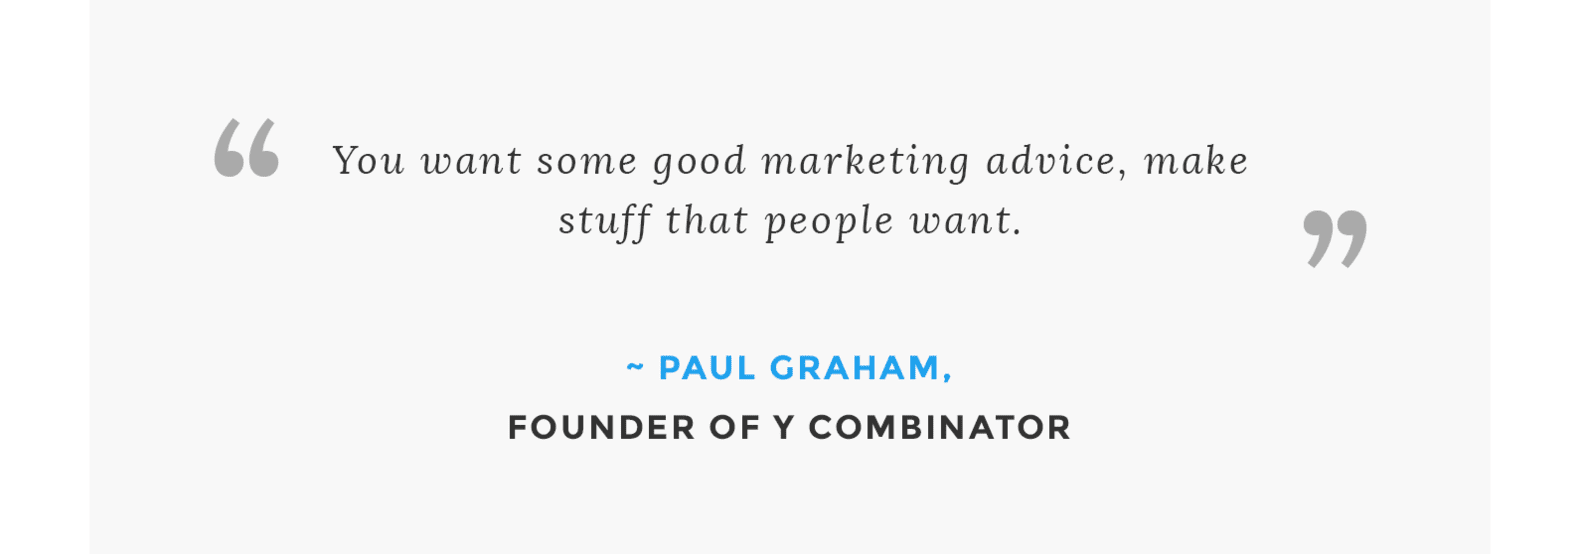 795x465-in-post-Paul Graham-quote@2x